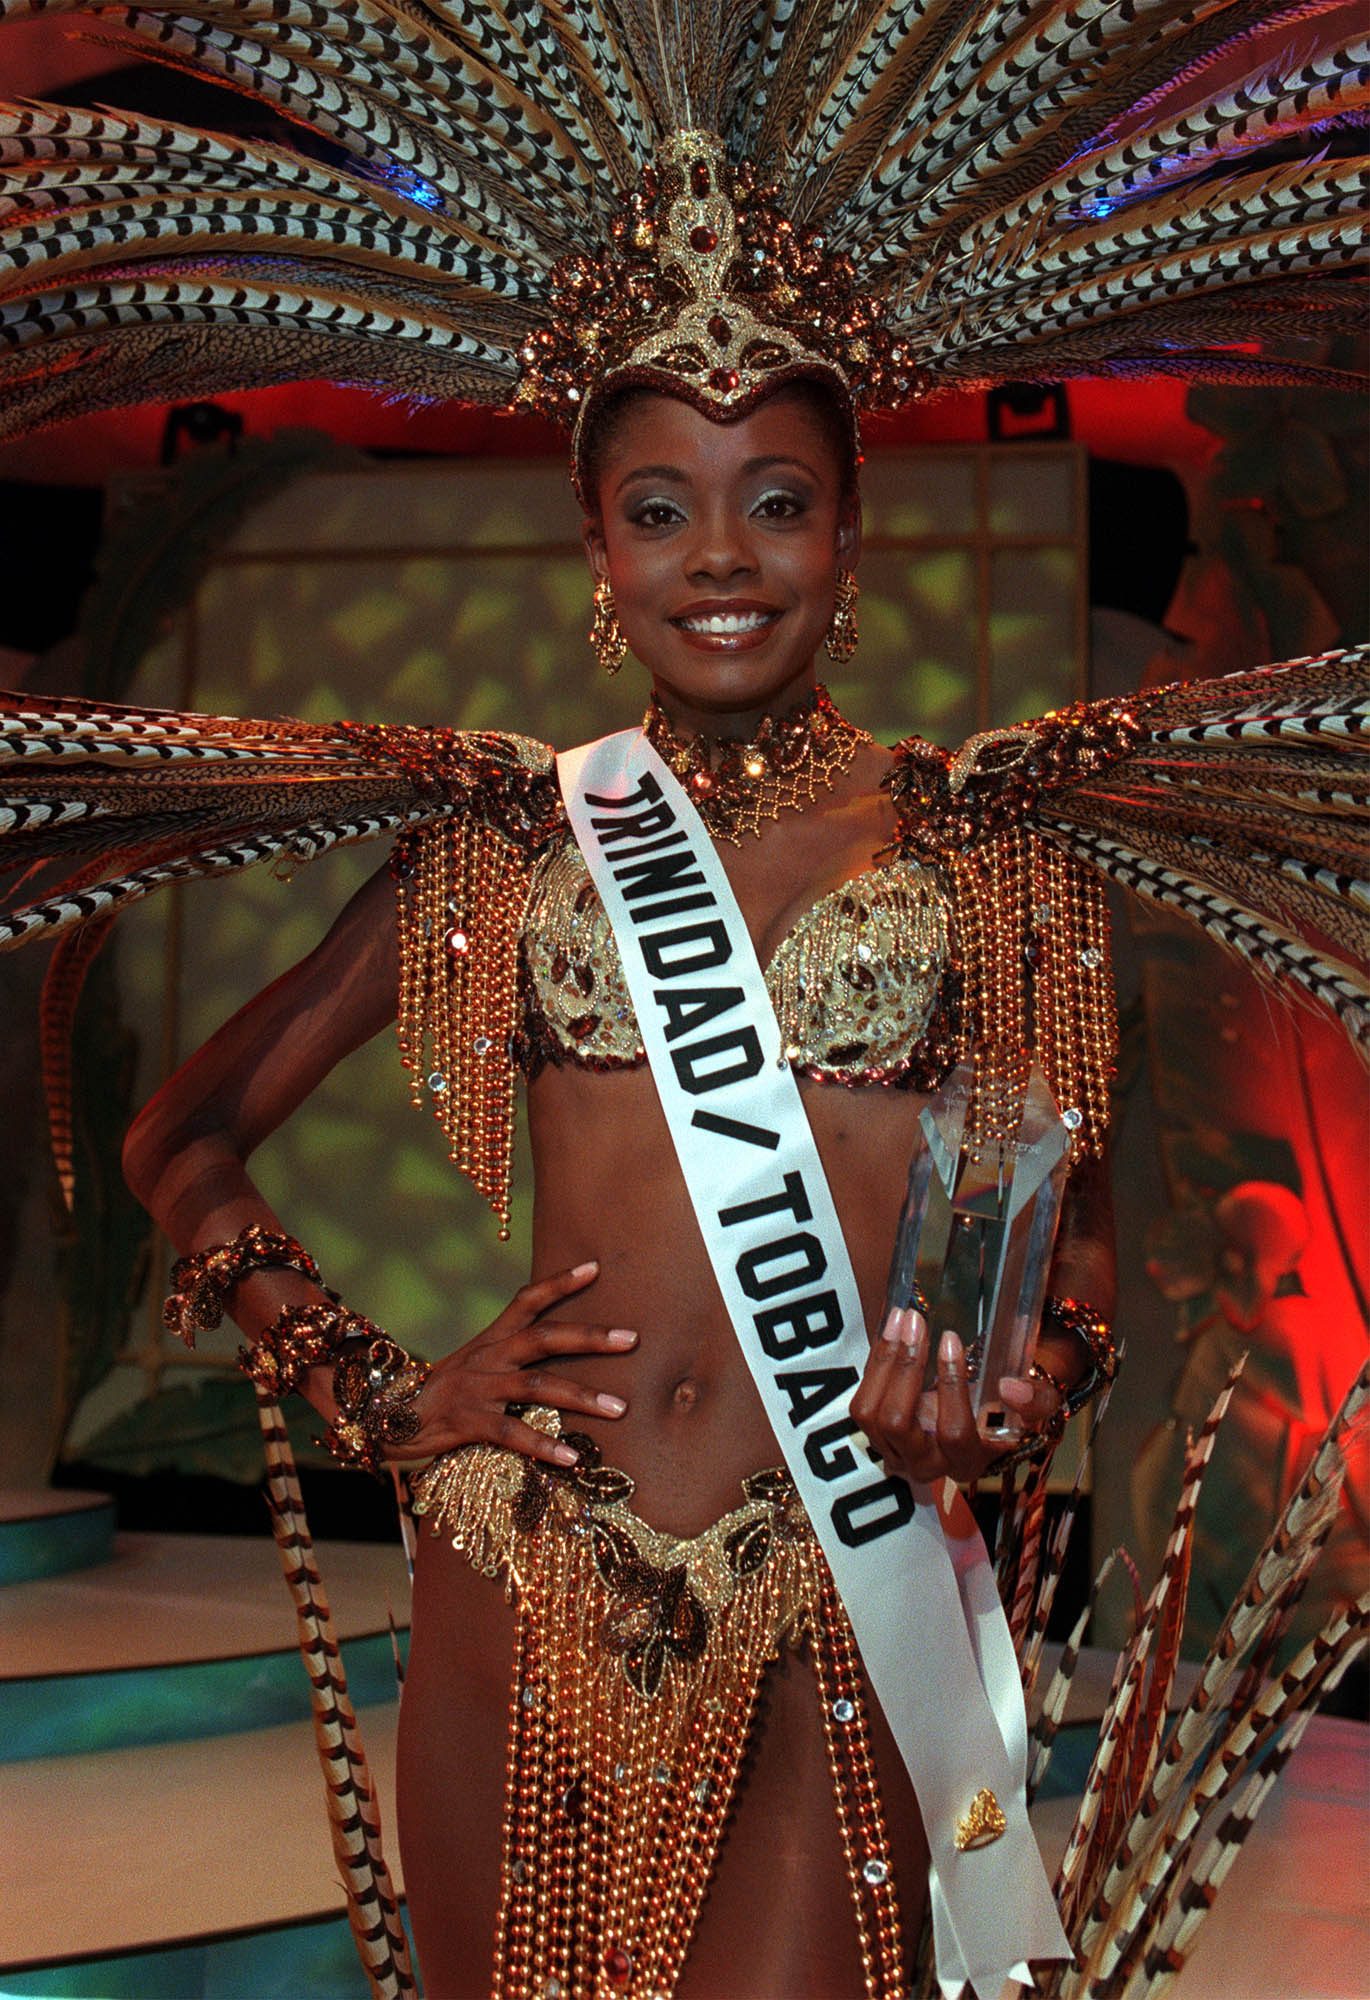 Wendy Fitzwilliam, MISS TRINIDAD u0026 TOBAGO 1998, wins Best in National Costume Award May 7, 1998 from Honolulu, Hawaii chosen by a panel of Hawaiian based judges. Fitzwilliam said the costume, entitled u0022Freedomu0022 , represents the spirit of her people and a cry of hope. The prize includes $1,000 cash and commemorative Hoya Crystal Trophy.  Photo from the Miss Universe Organization